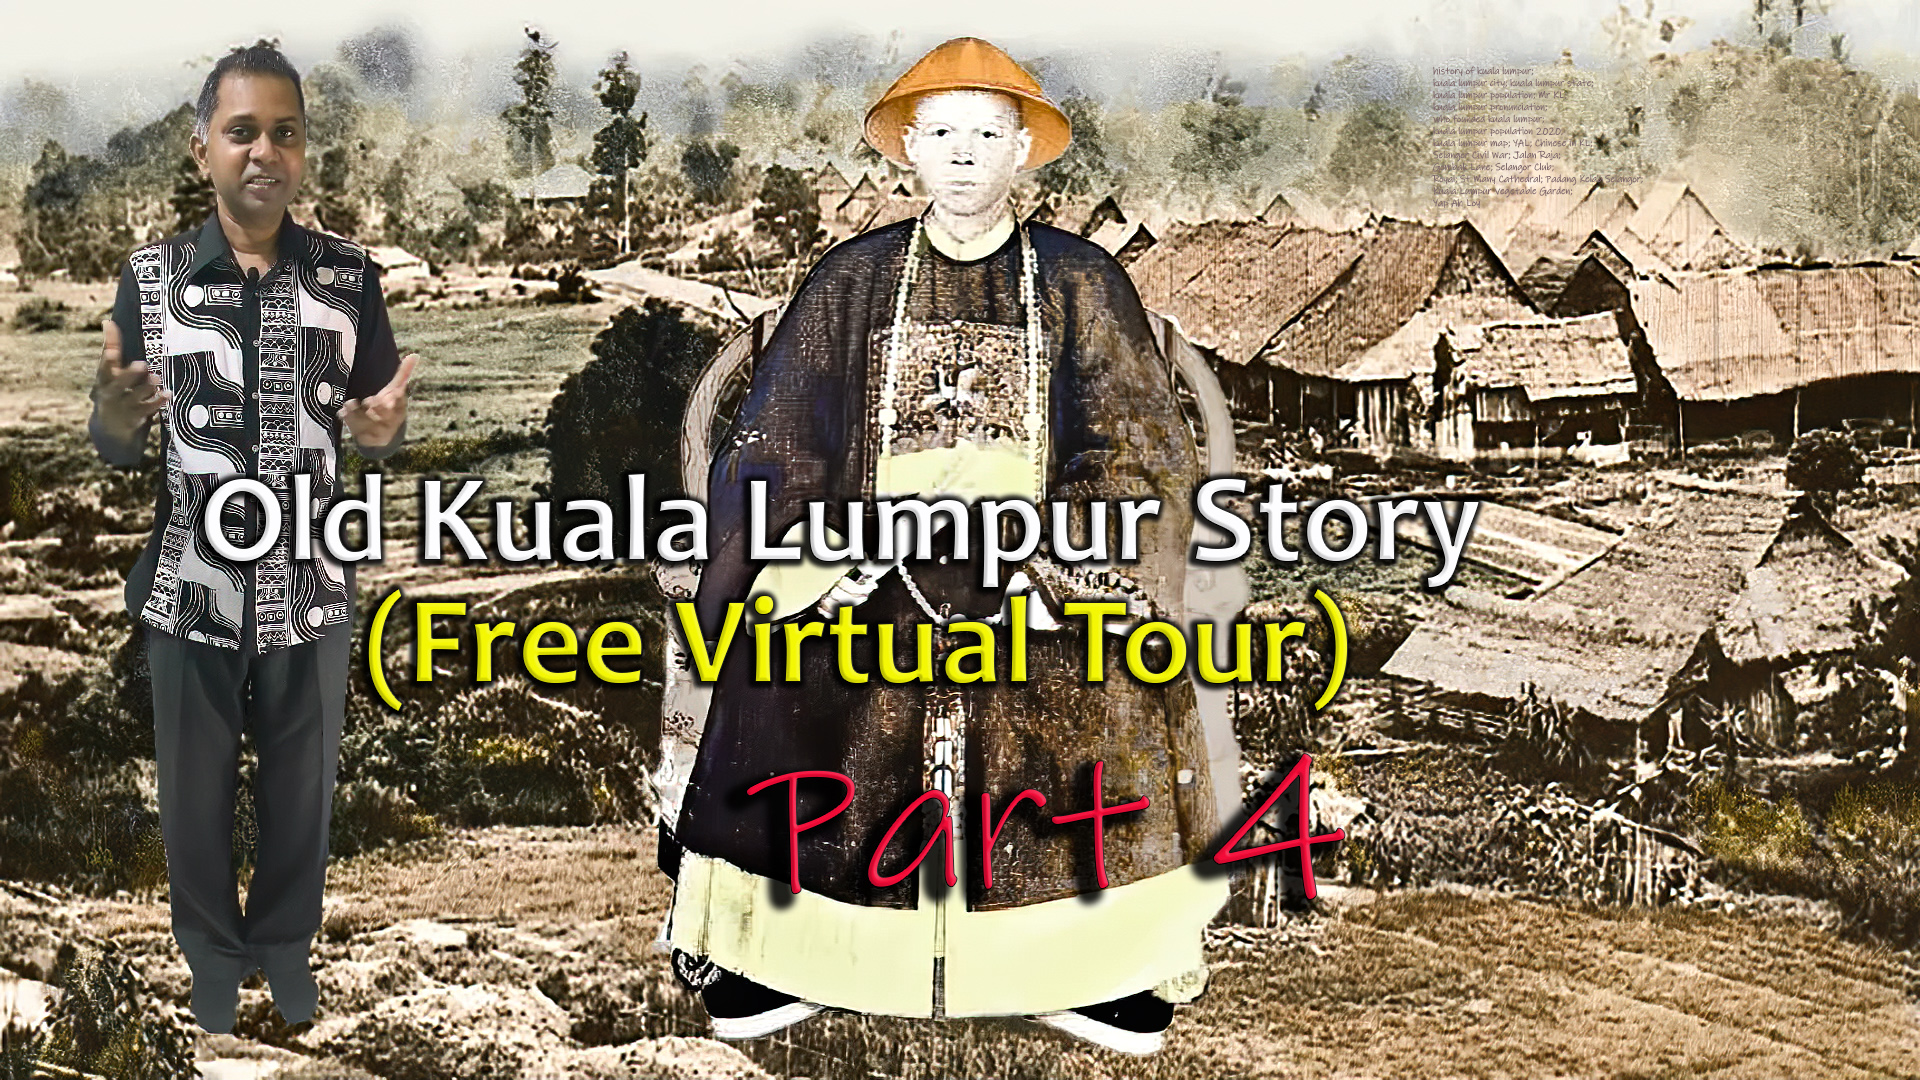 Johnson giving a Free virtual tour on Kuala Lumpur history. The photo shows how kuala lumpur ground was before the building of the famous Sultan Abdul Samad building and many historical ground. This is very rare sight to experience. Don't miss to watch part 1,2,3 or visit for free Museum Virtual tour at http://virtualtourcreator.my/2021/01/19/national-museum-of-malaysia-free-virtual-tour/